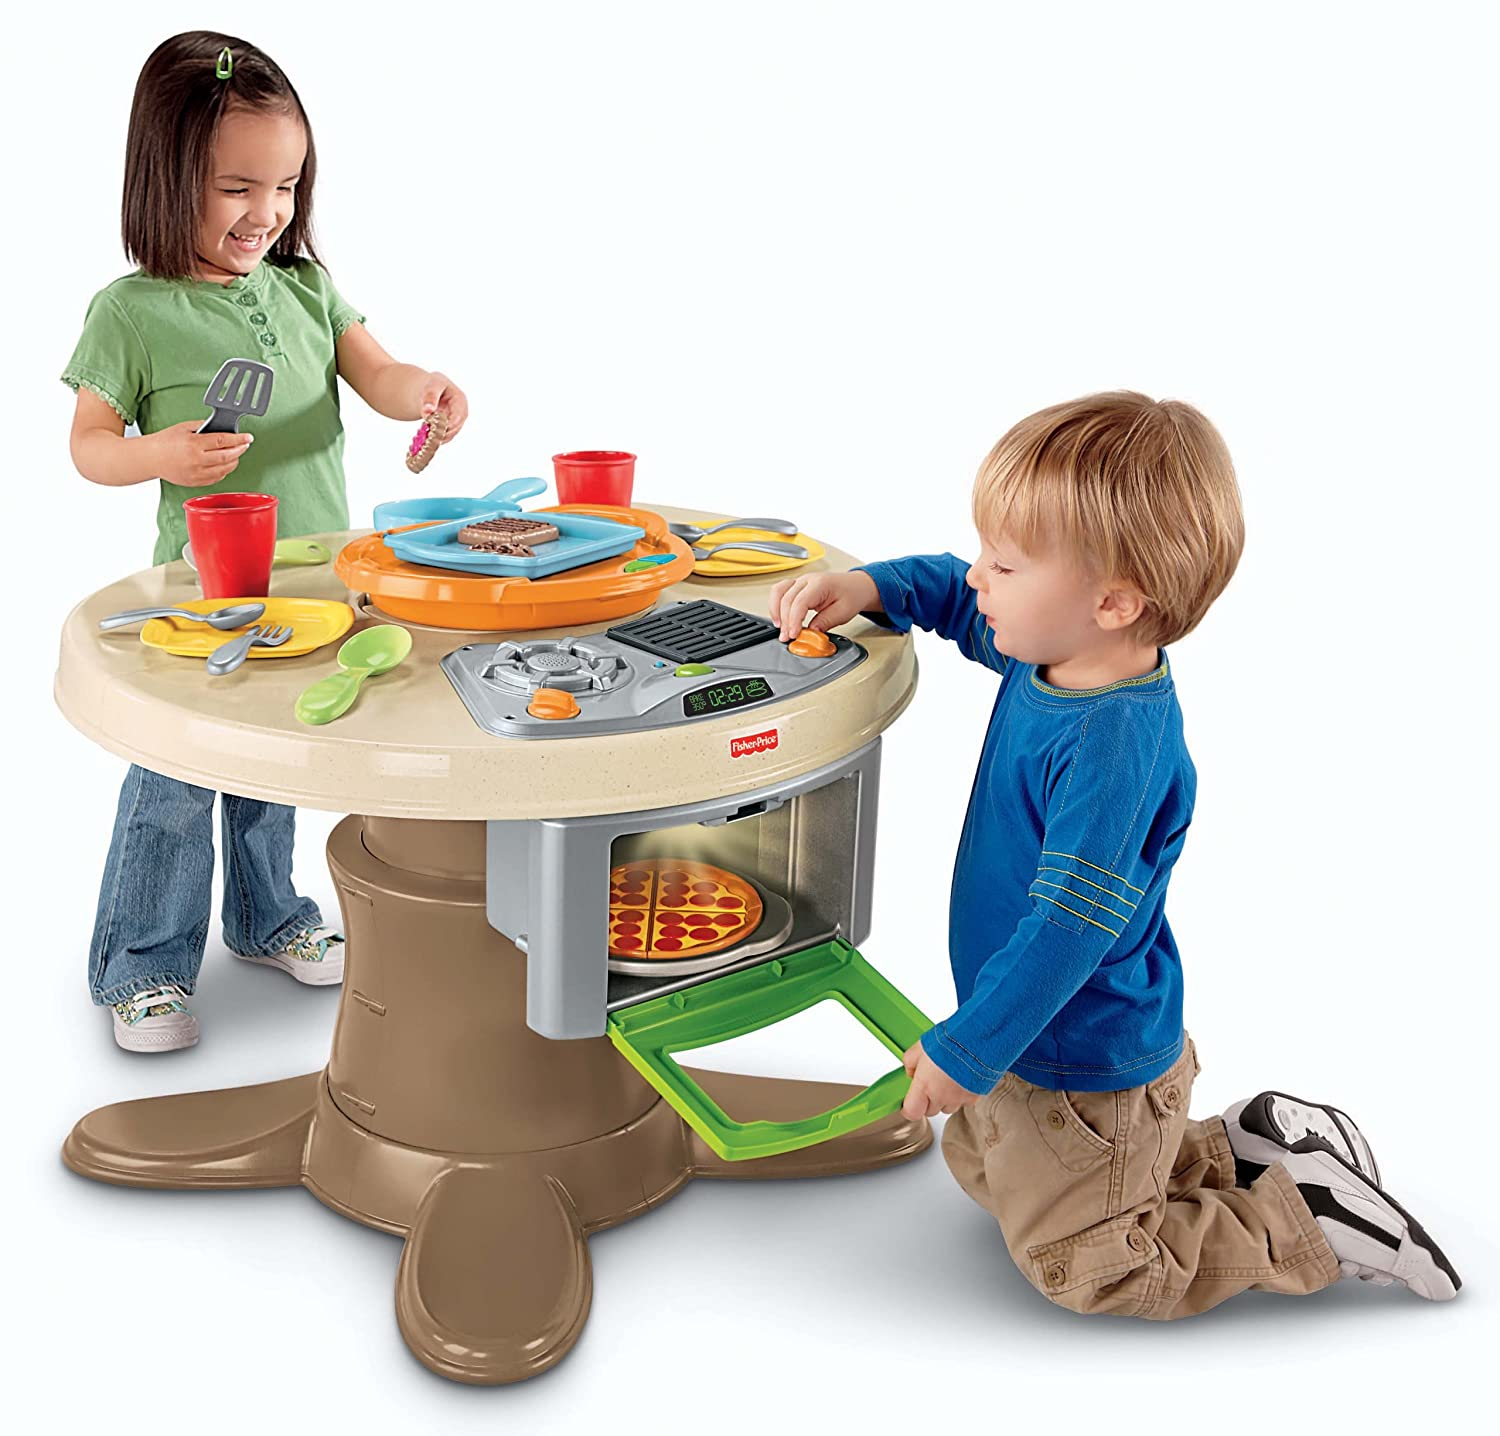 fisher price kids table and chairs plastic outdoor home depot best christmas toys gifts for boys 3 years old